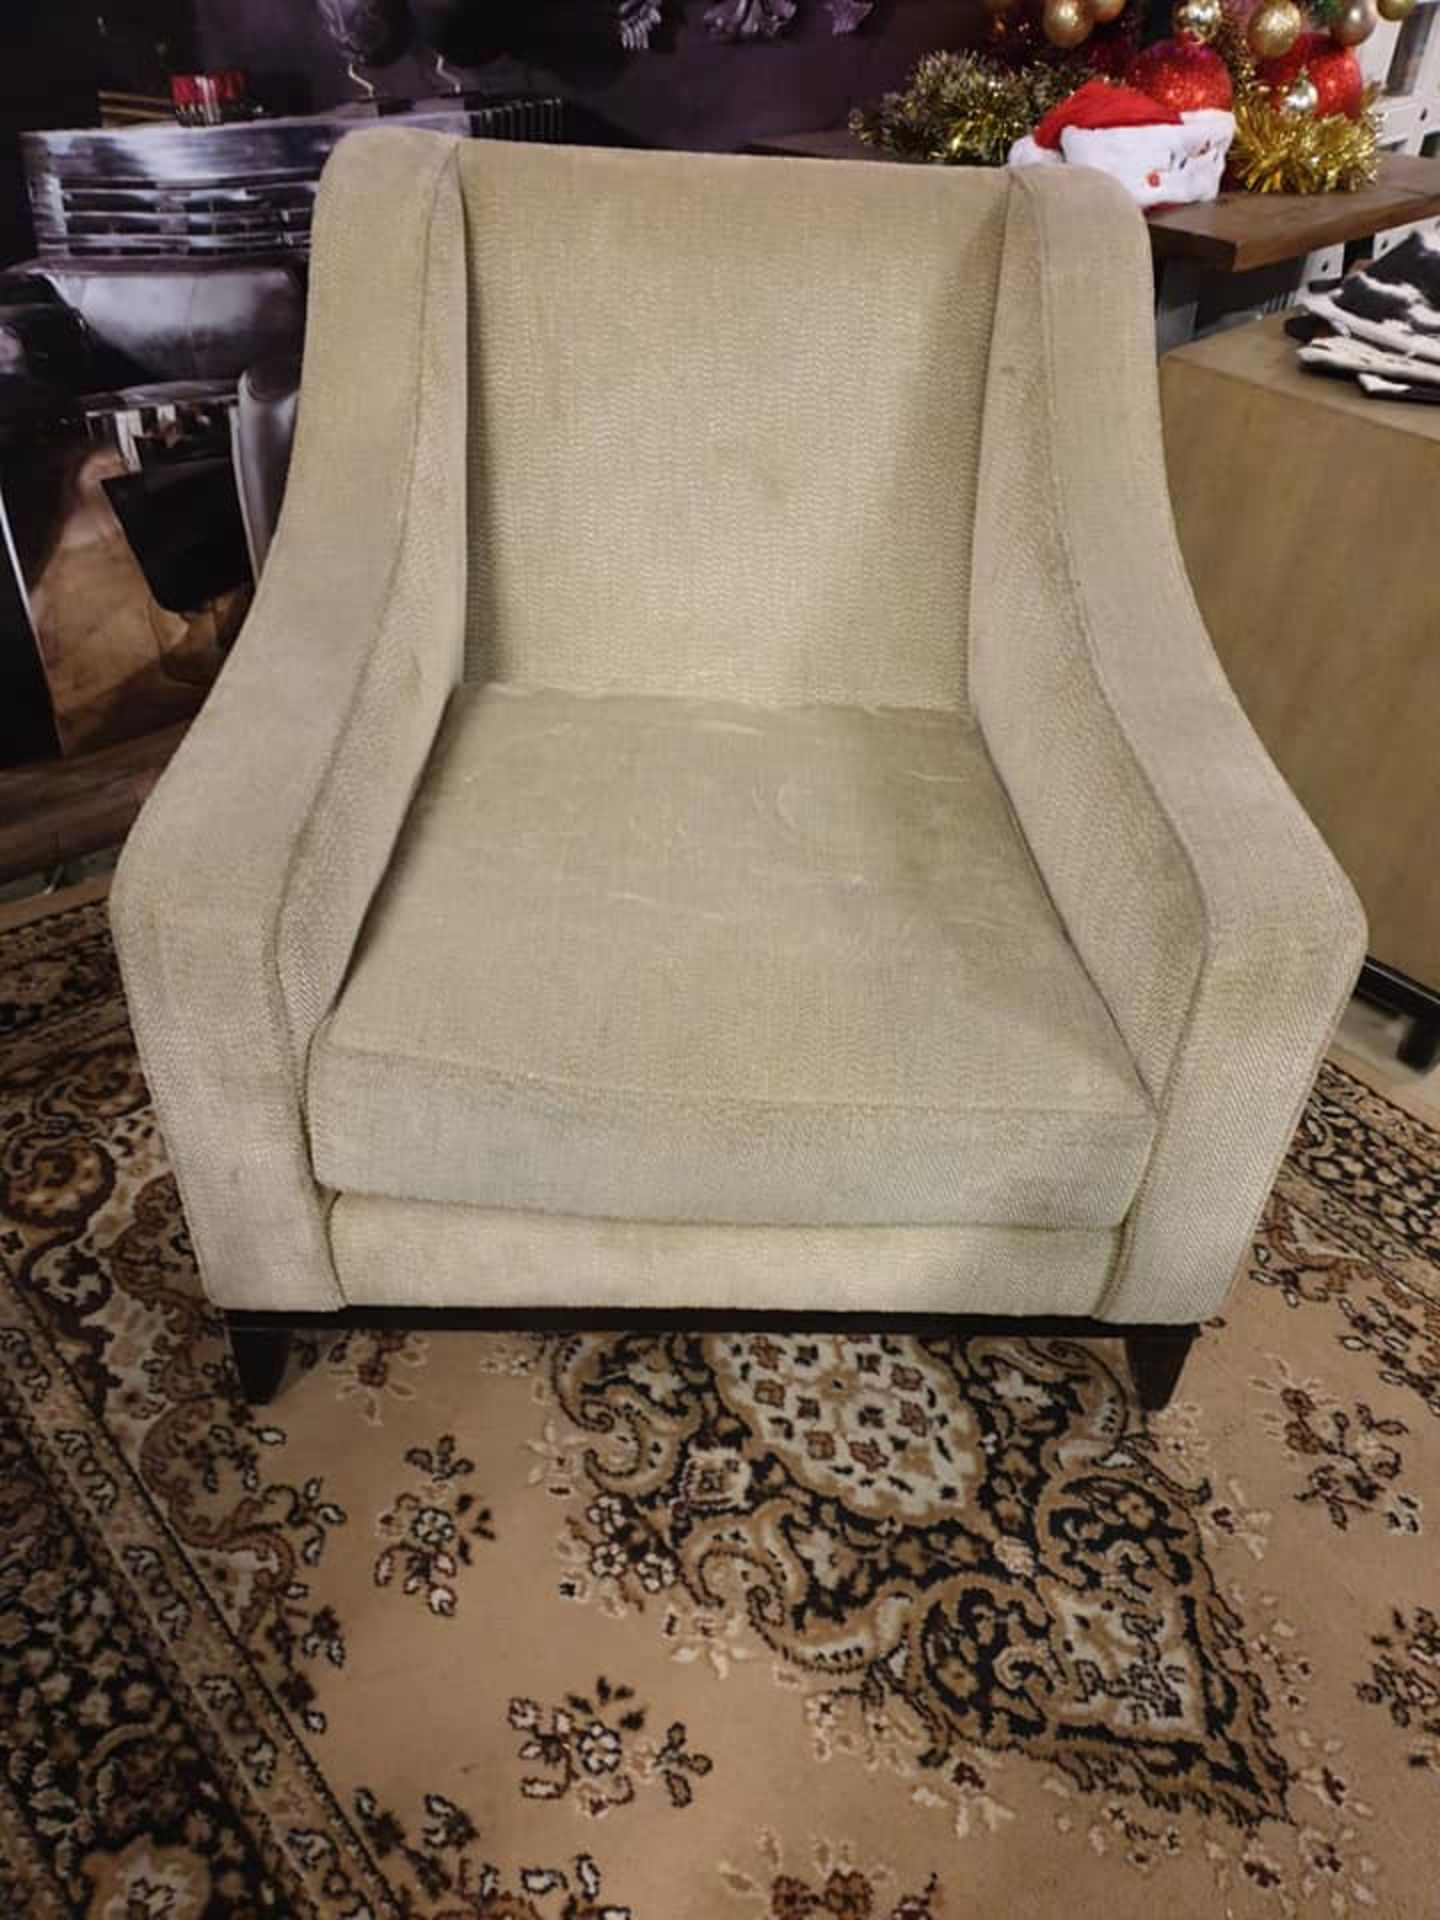 A Set Of 3 X Luxury Upholstered Cream Large Armchairs 84 X 70 X 87cm - Image 2 of 2